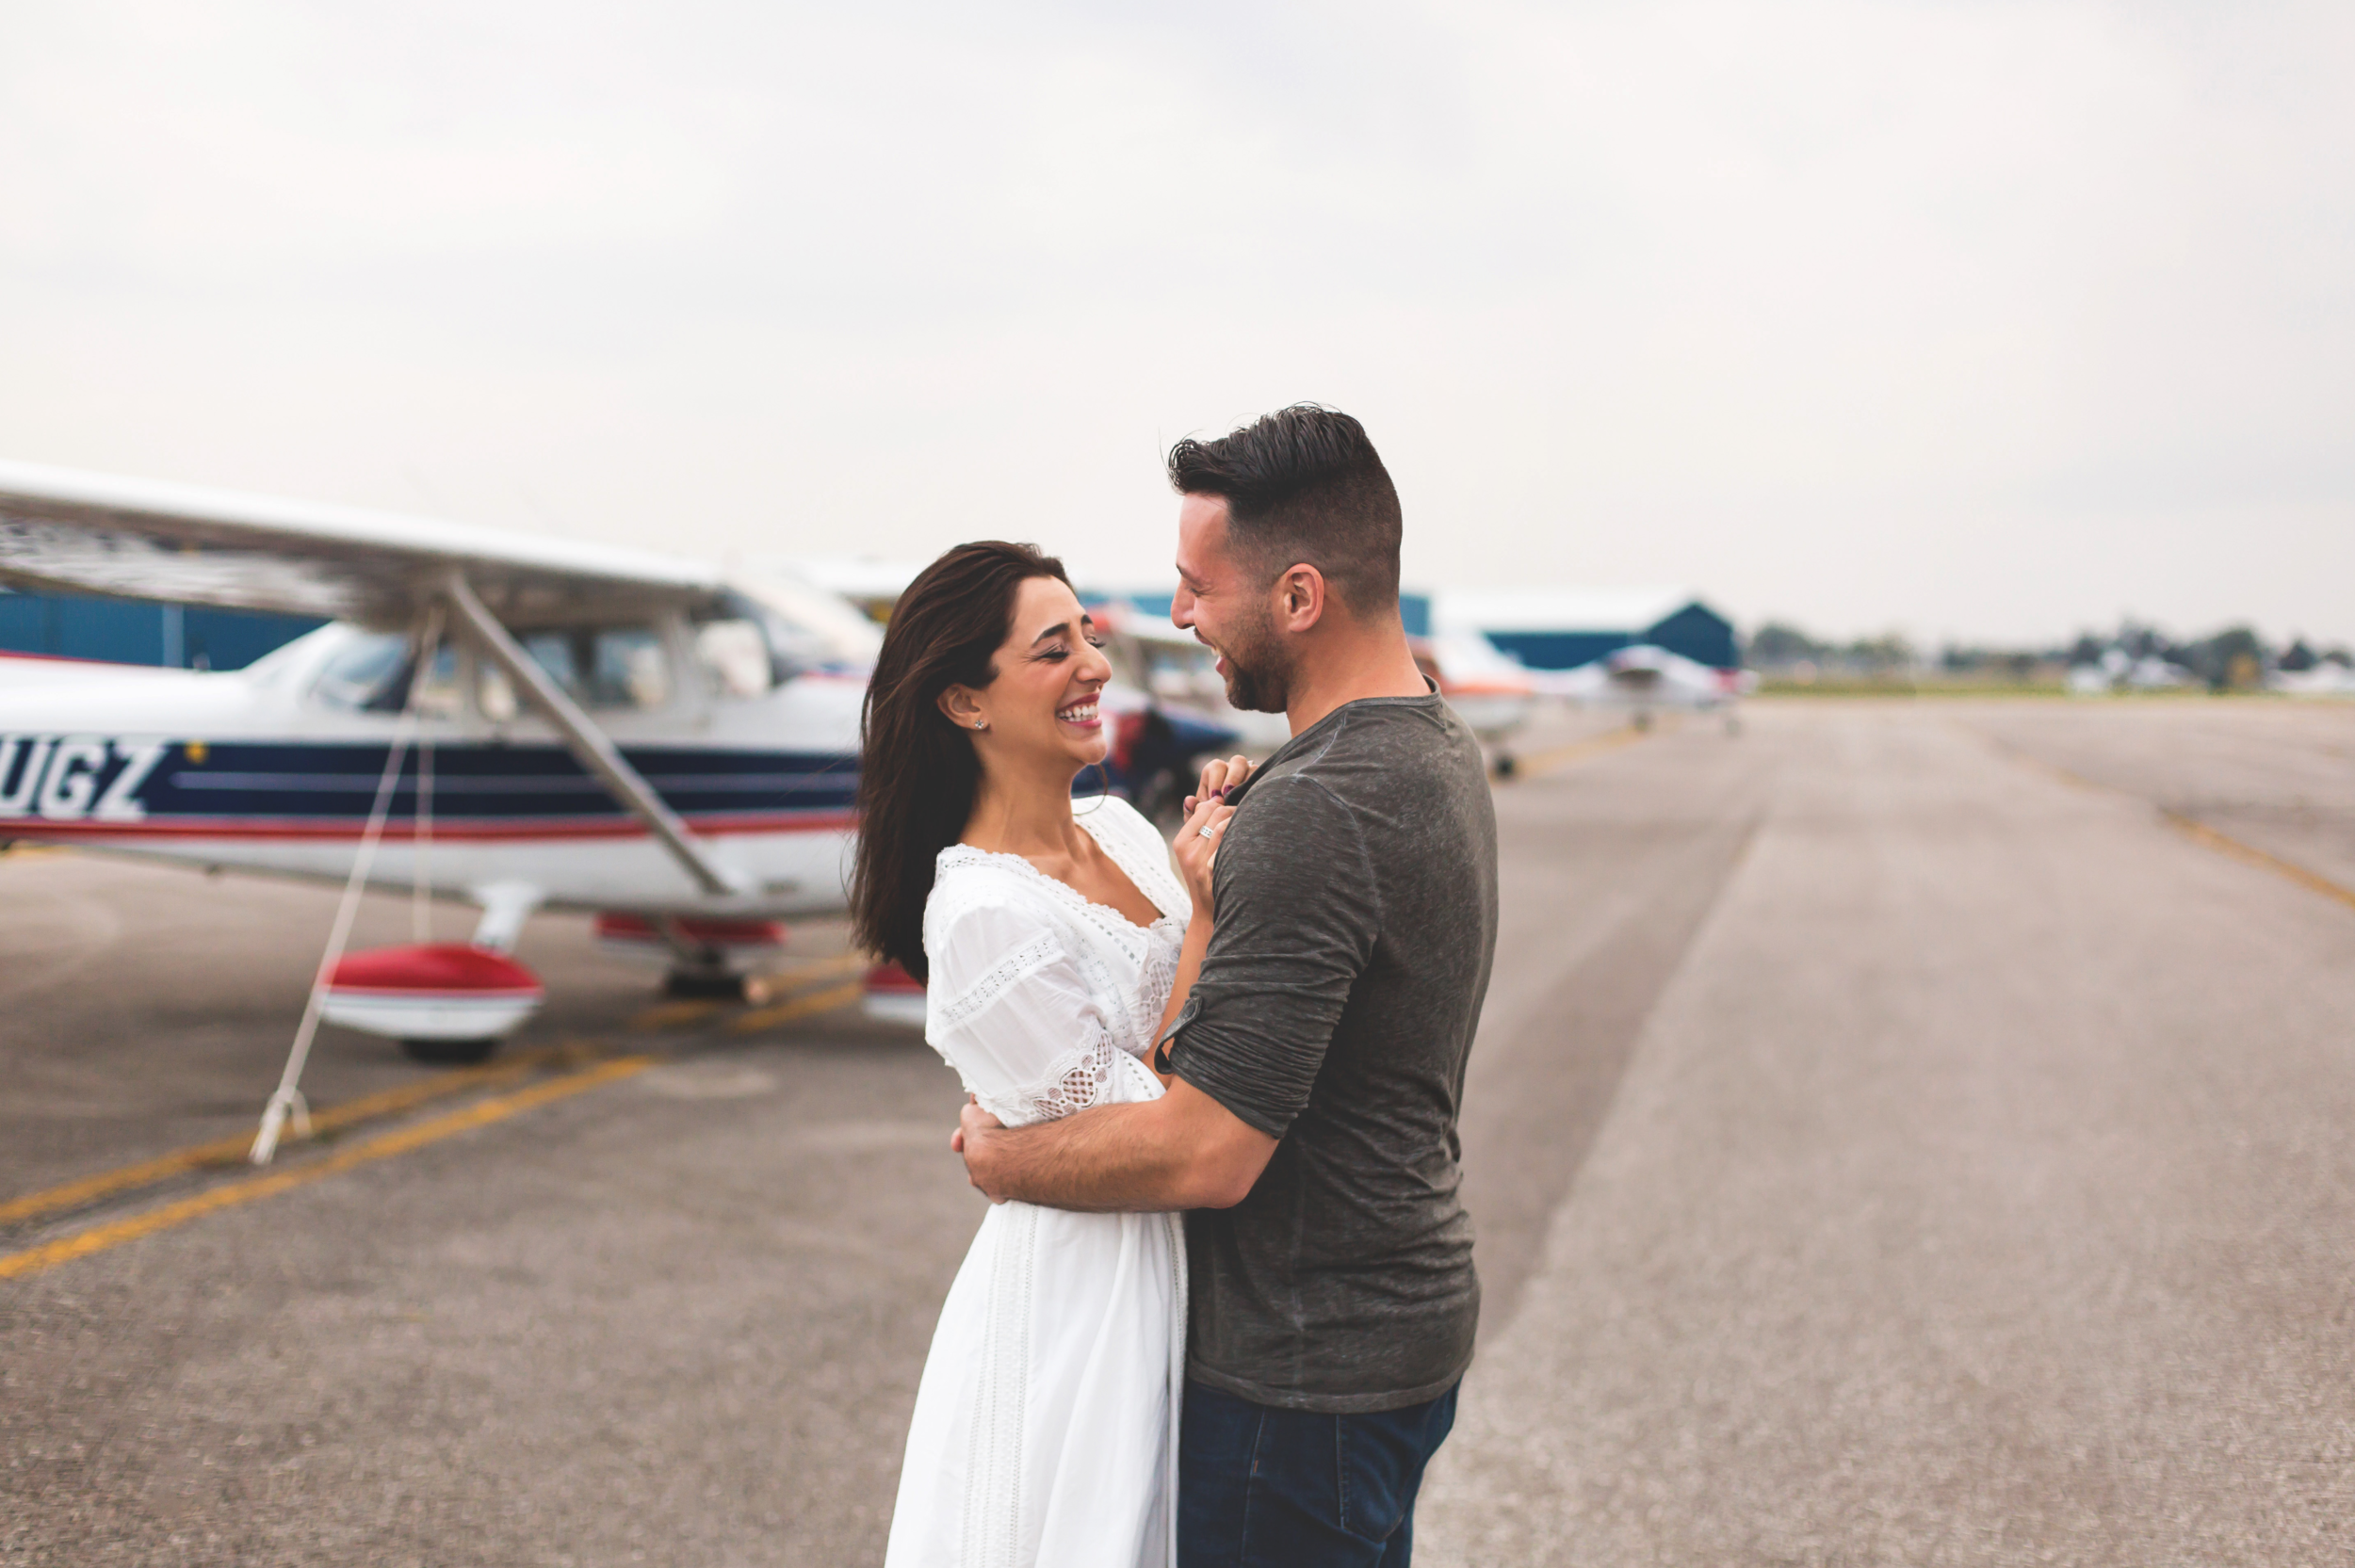 Engagement-Session-Hamilton-Burlington-Oakville-Toronto-Niagara-Wedding-Photographer-Engaged-Photography-Brantford-Airport-HamOnt-Engaged-Moments-by-Lauren-Photo-Image-33.png